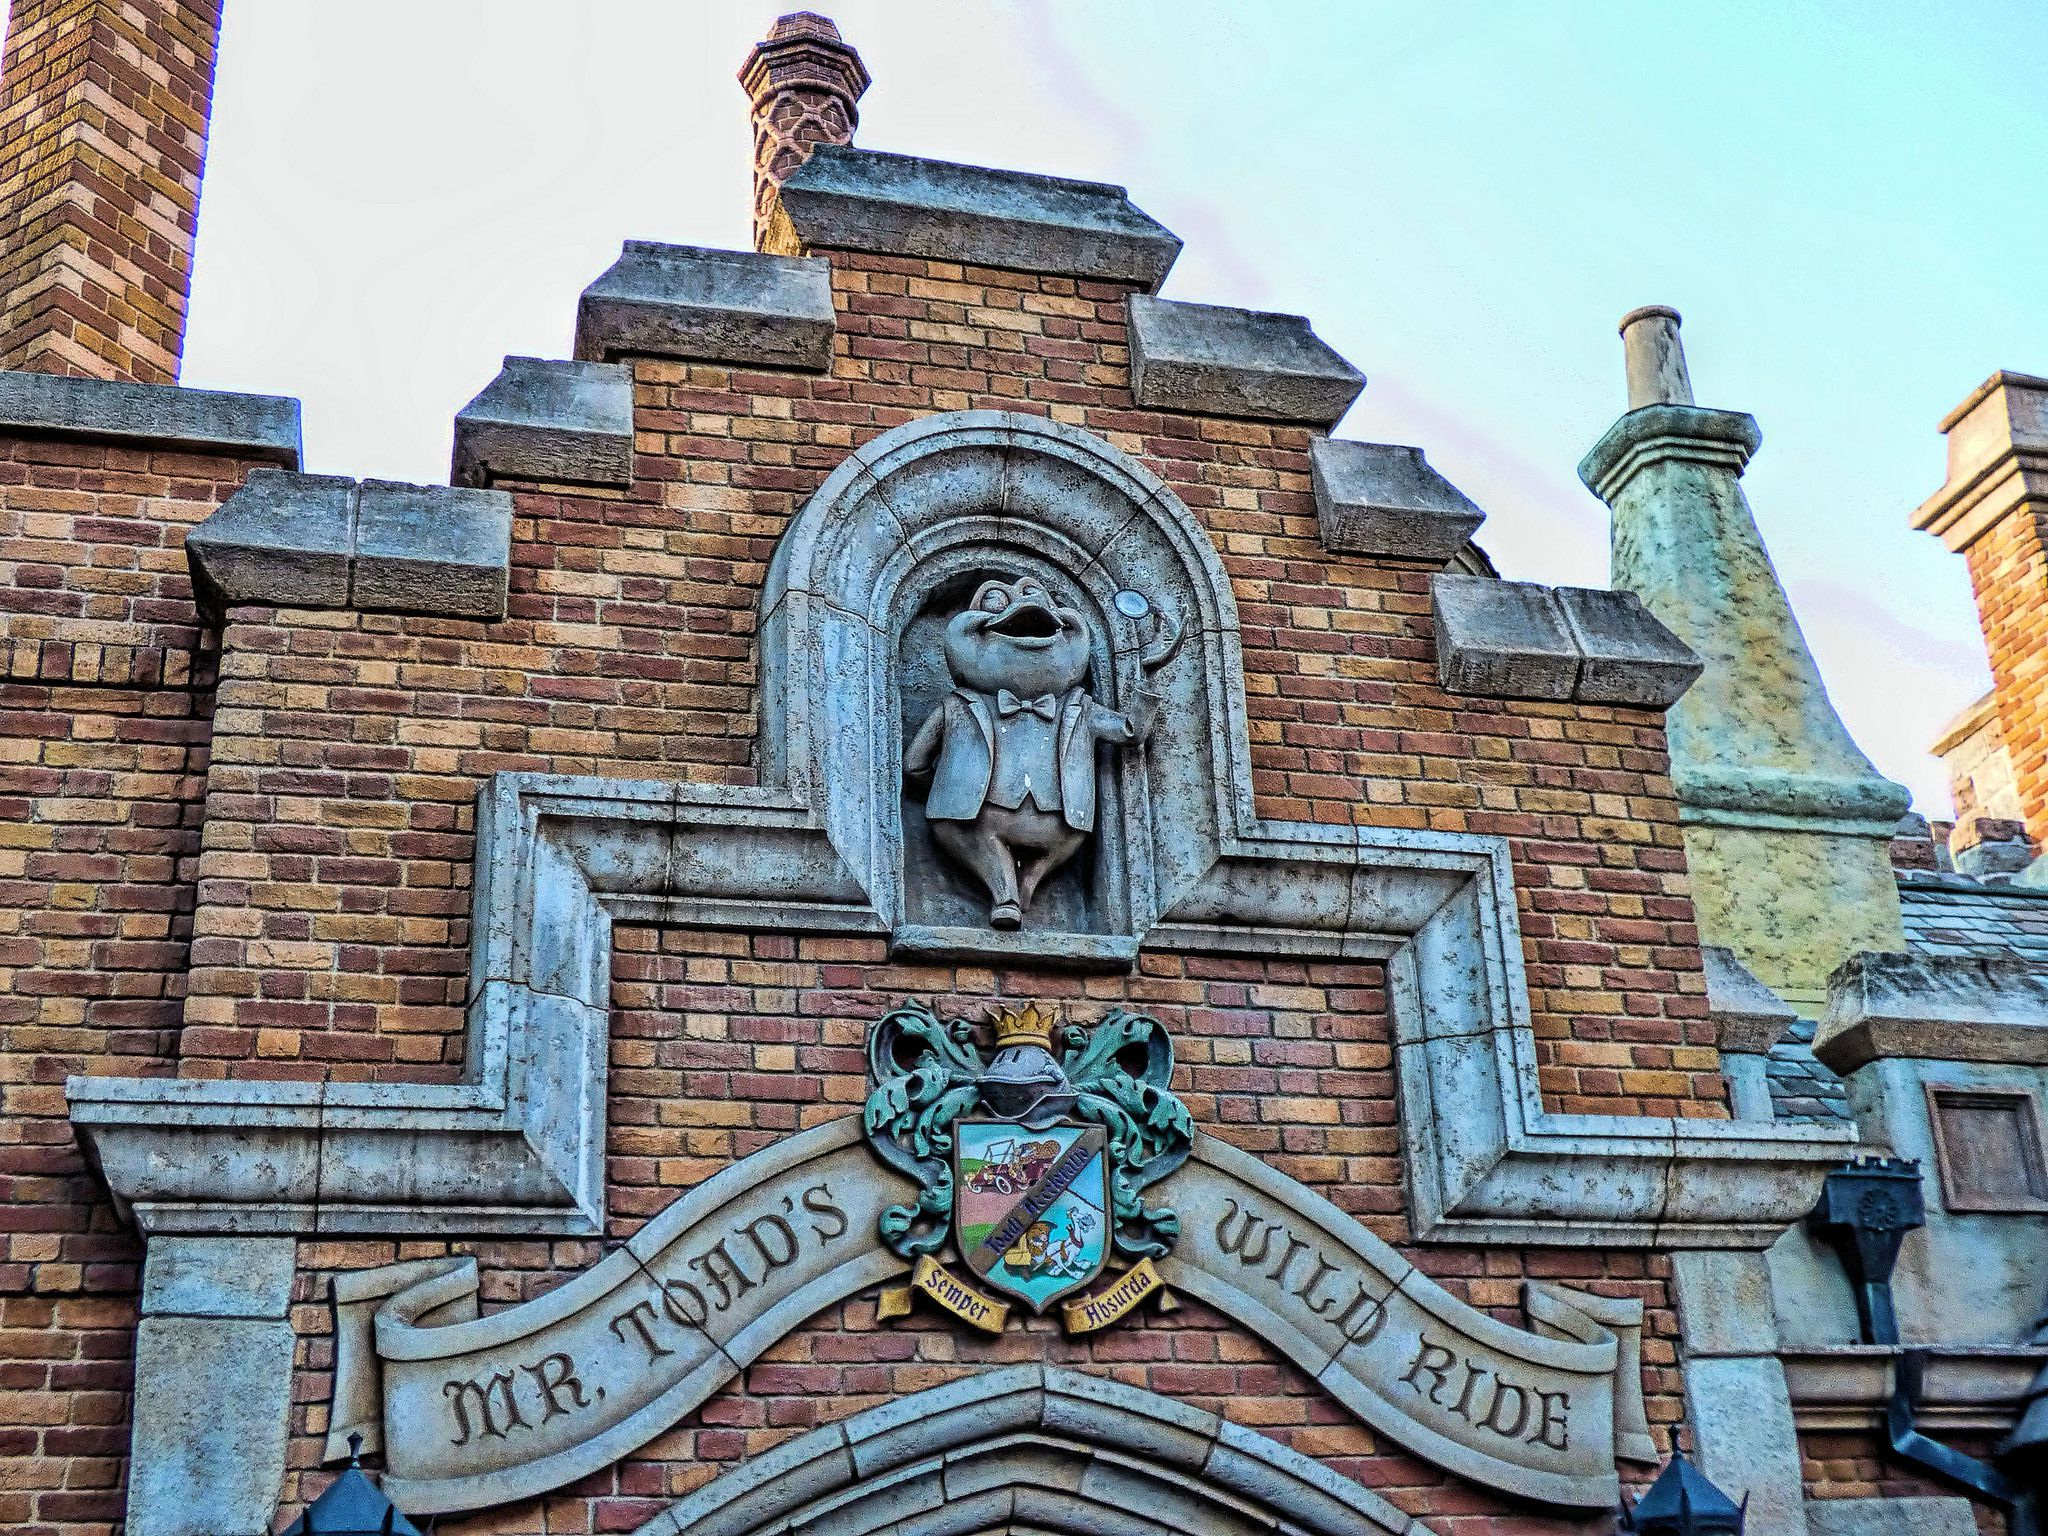 Mr  Toad's Wild Ride at Disneyland: Things to Know